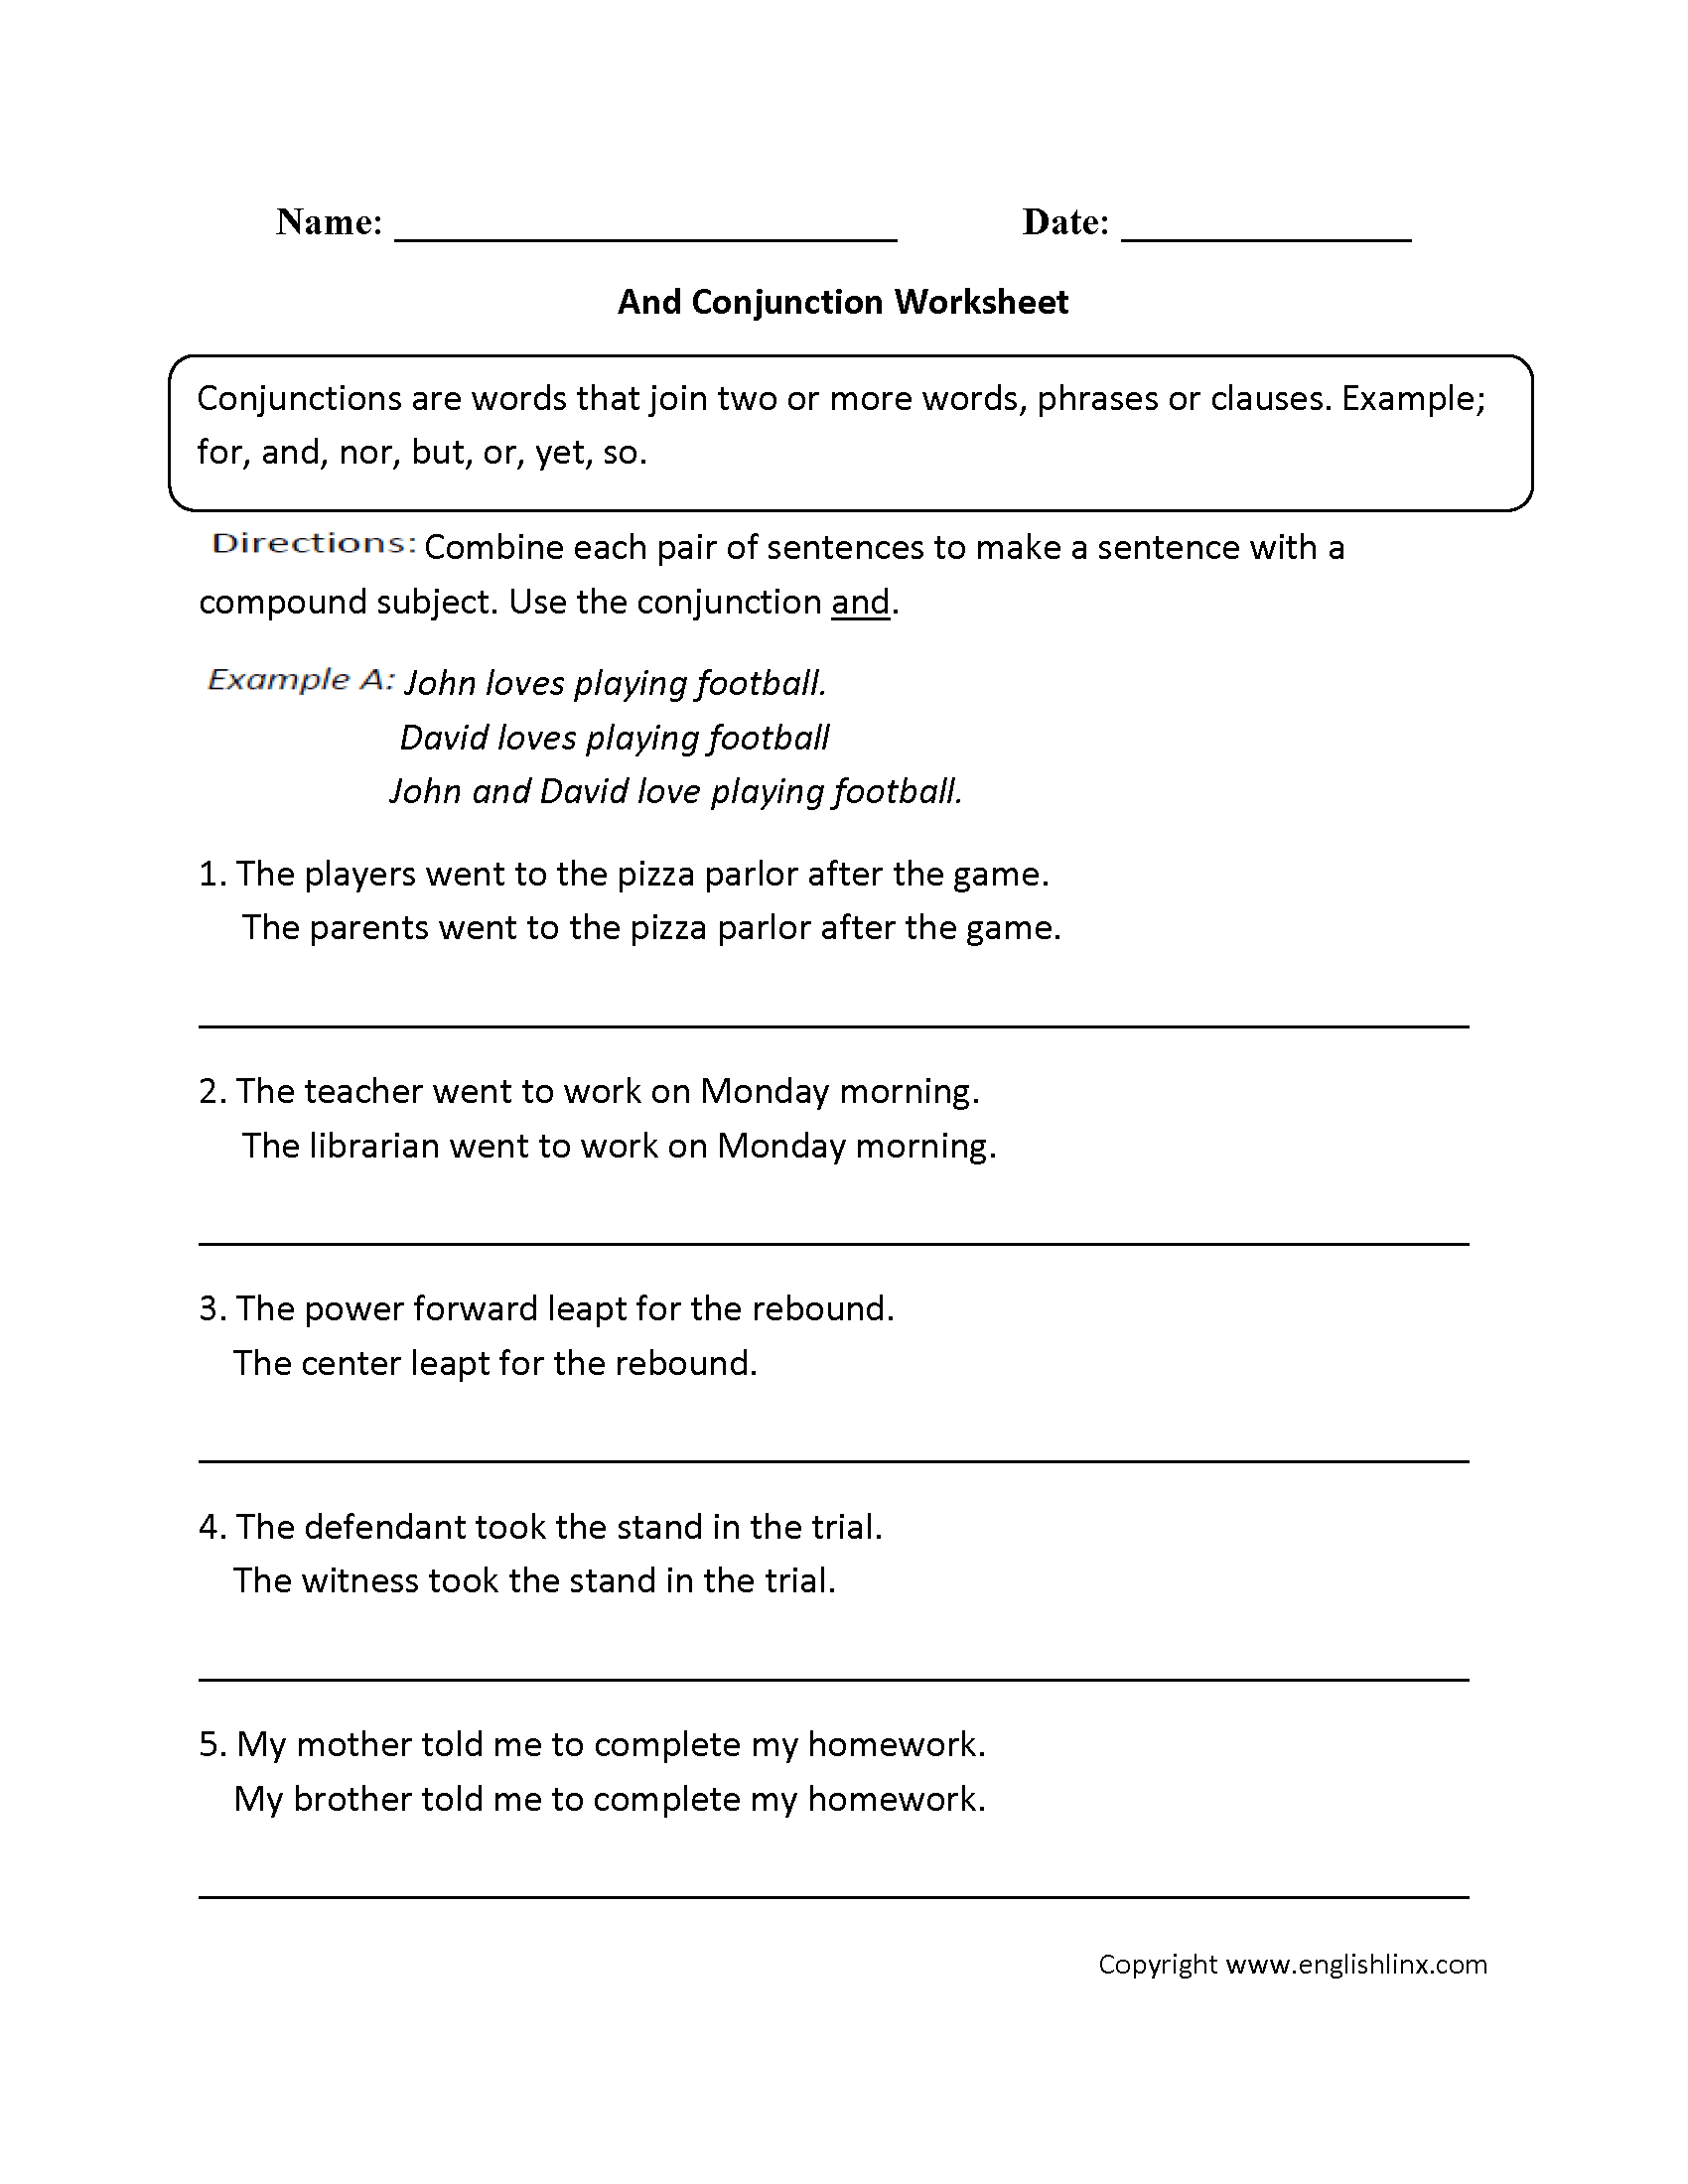 Worksheets Grammar Worksheet grammar worksheets parts of speech conjunction worksheets